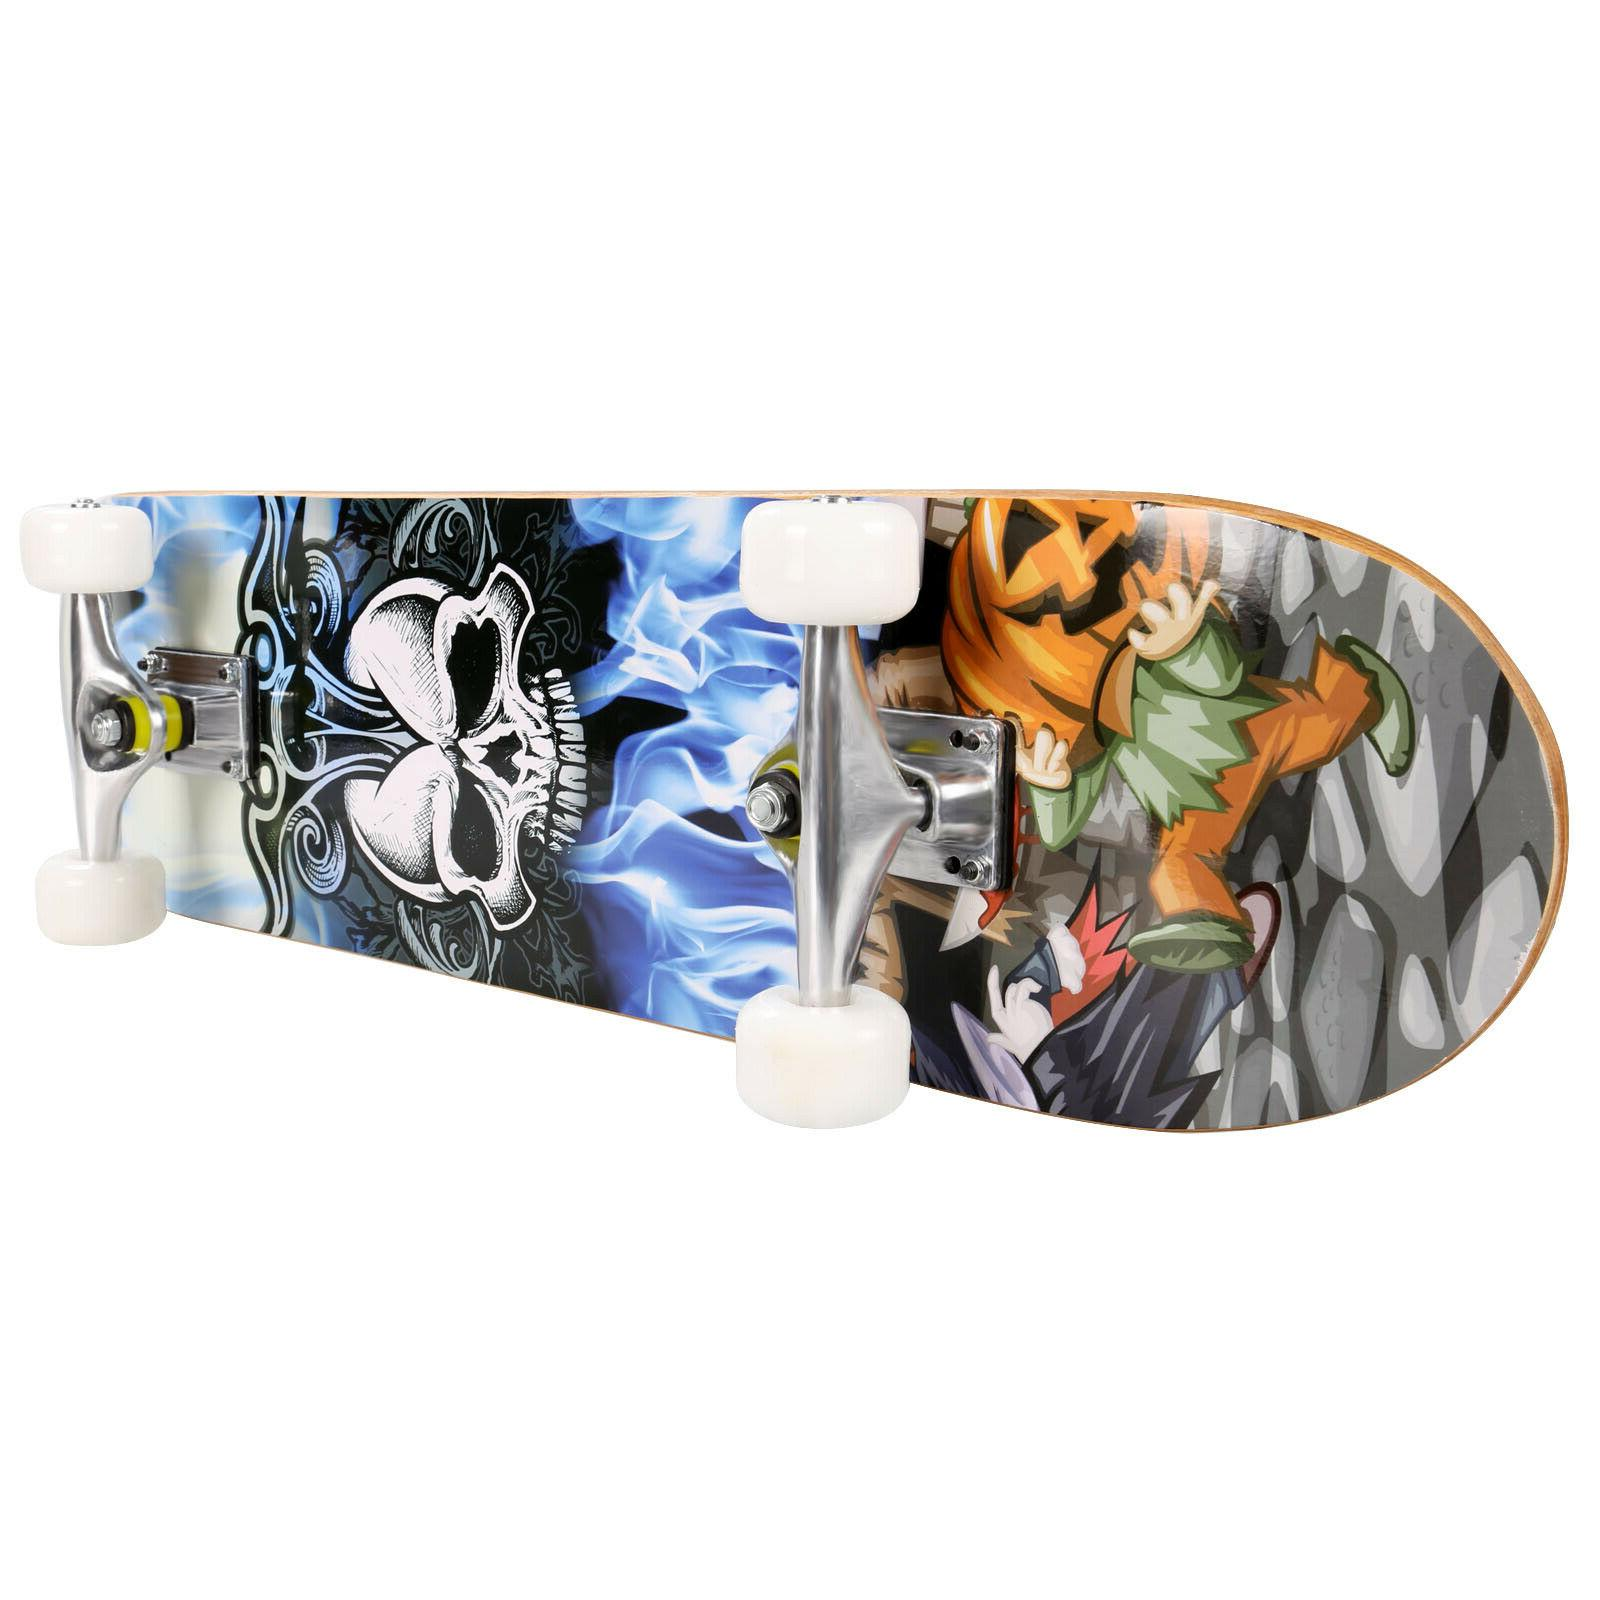 Professional Skateboard Complete Wheel Deck Solid